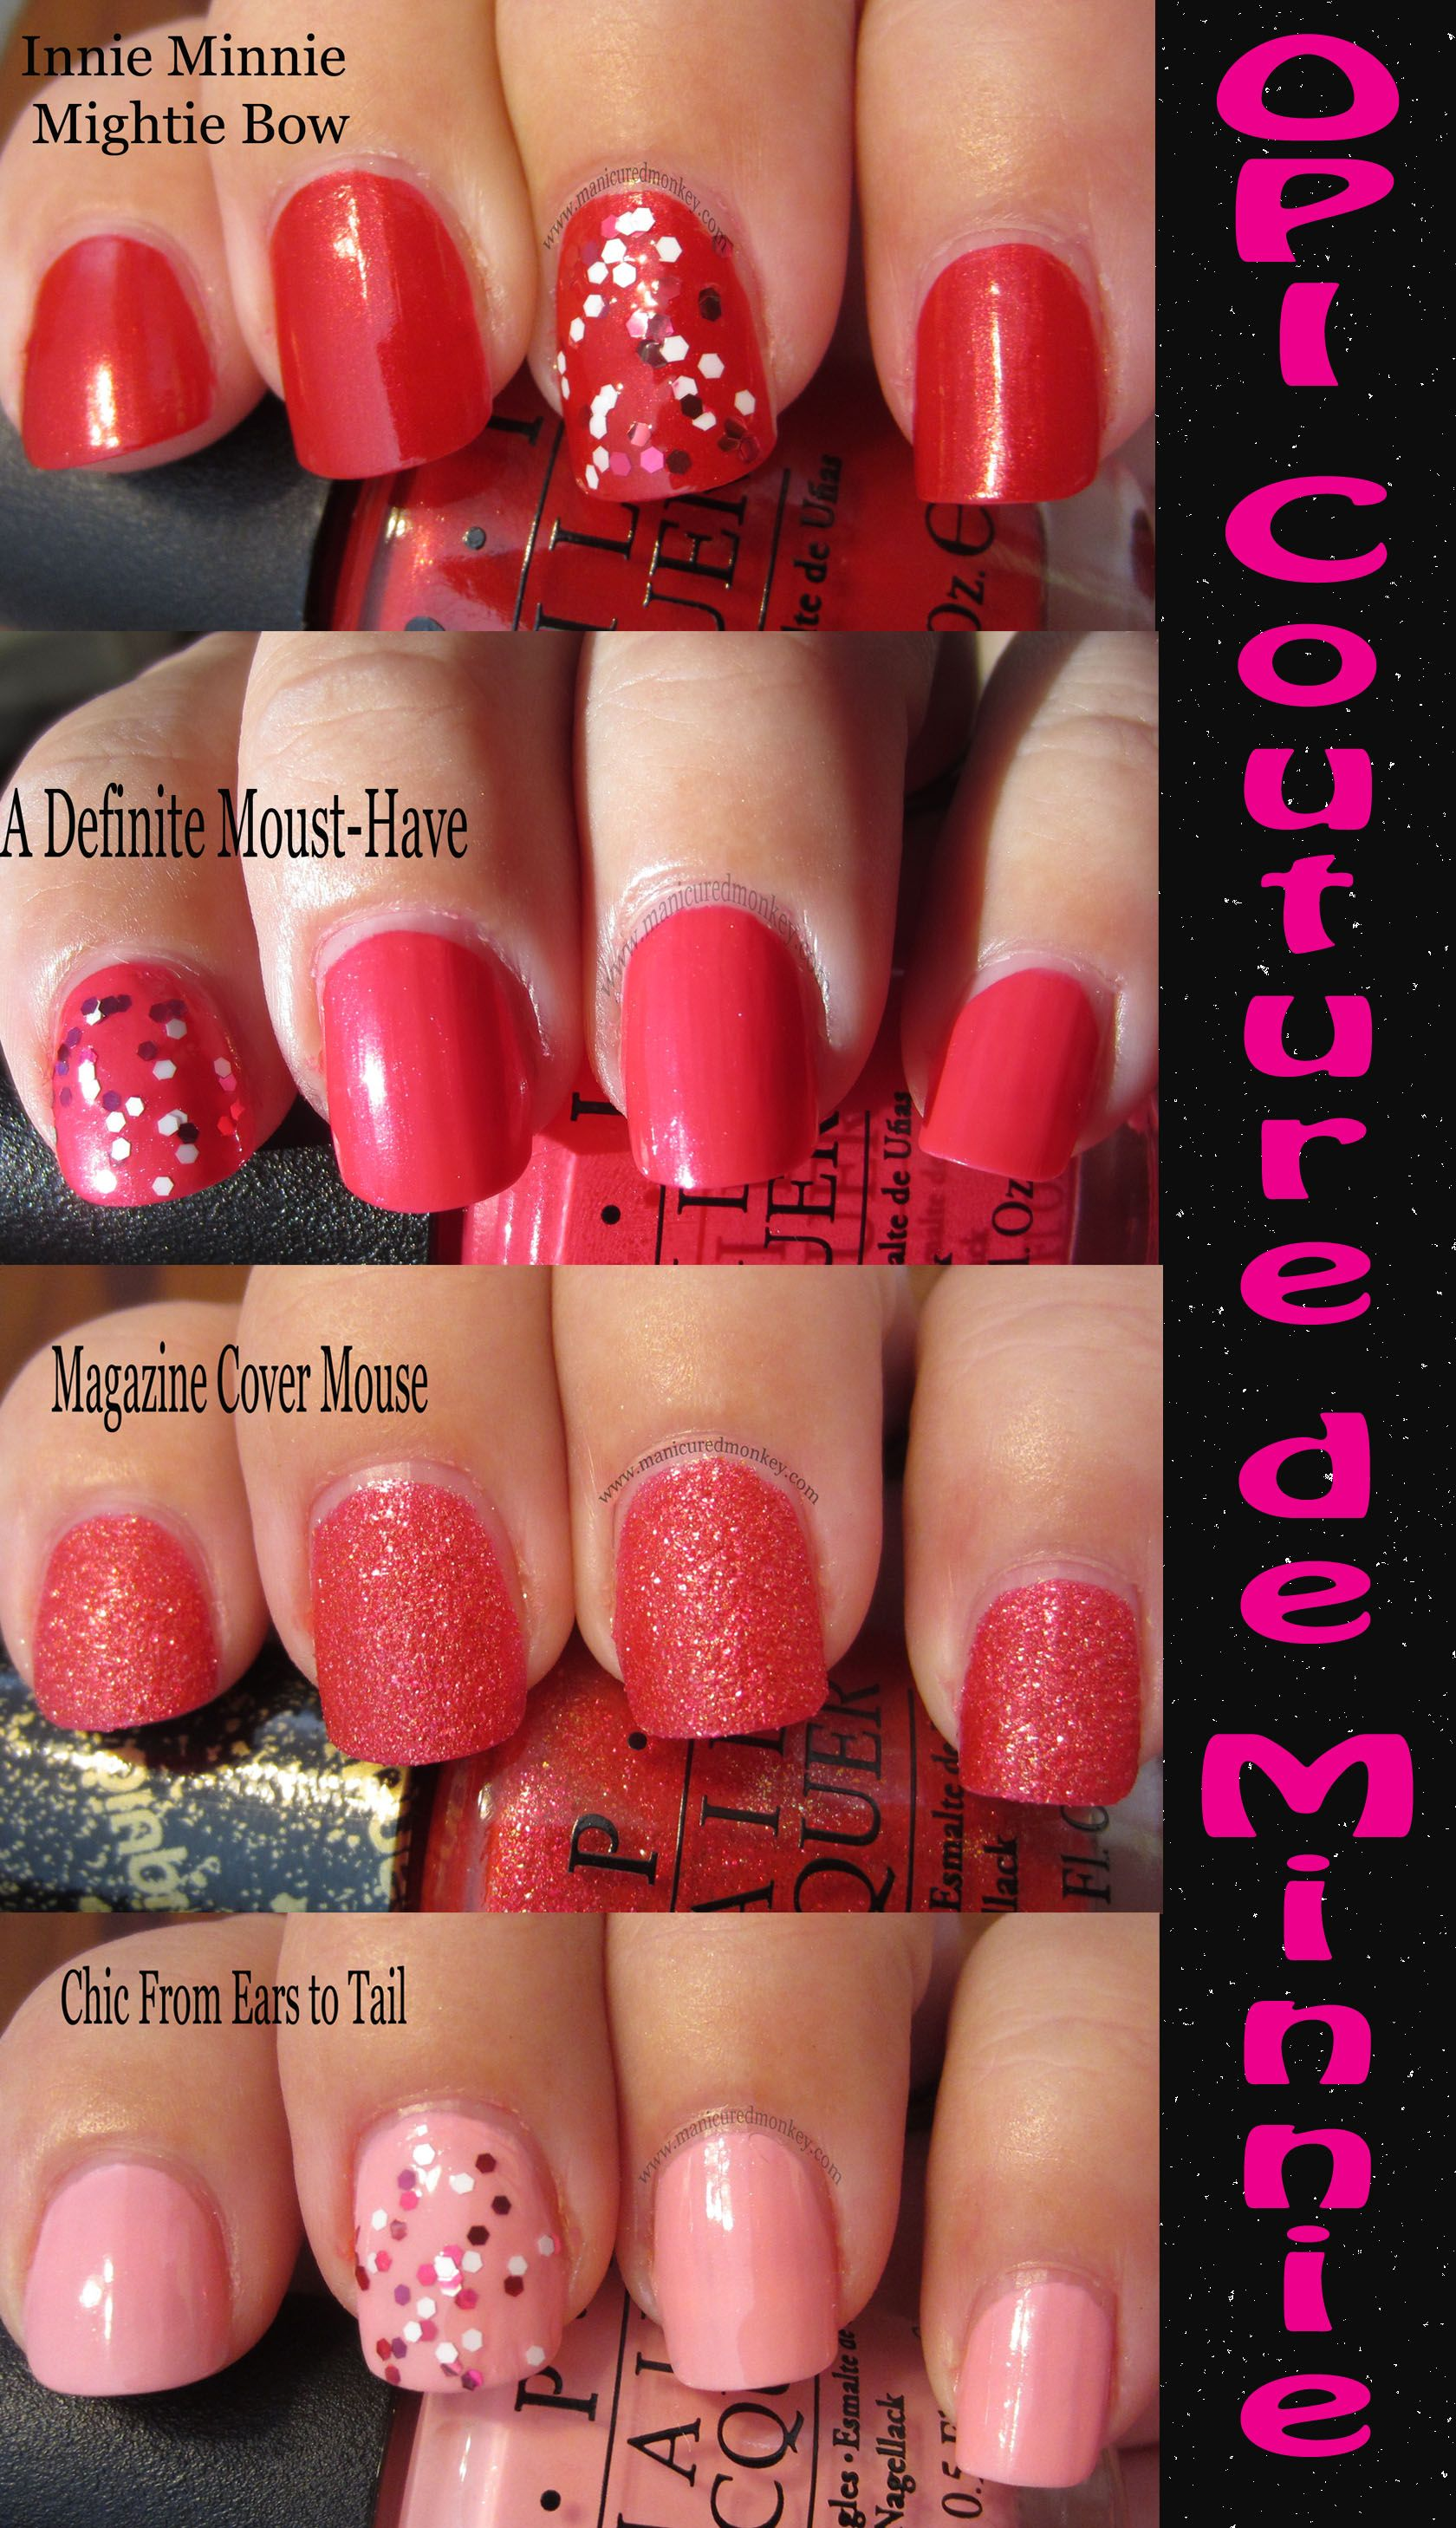 OPI\'s new line focused on Minnie Mouse includes a limited edition ...